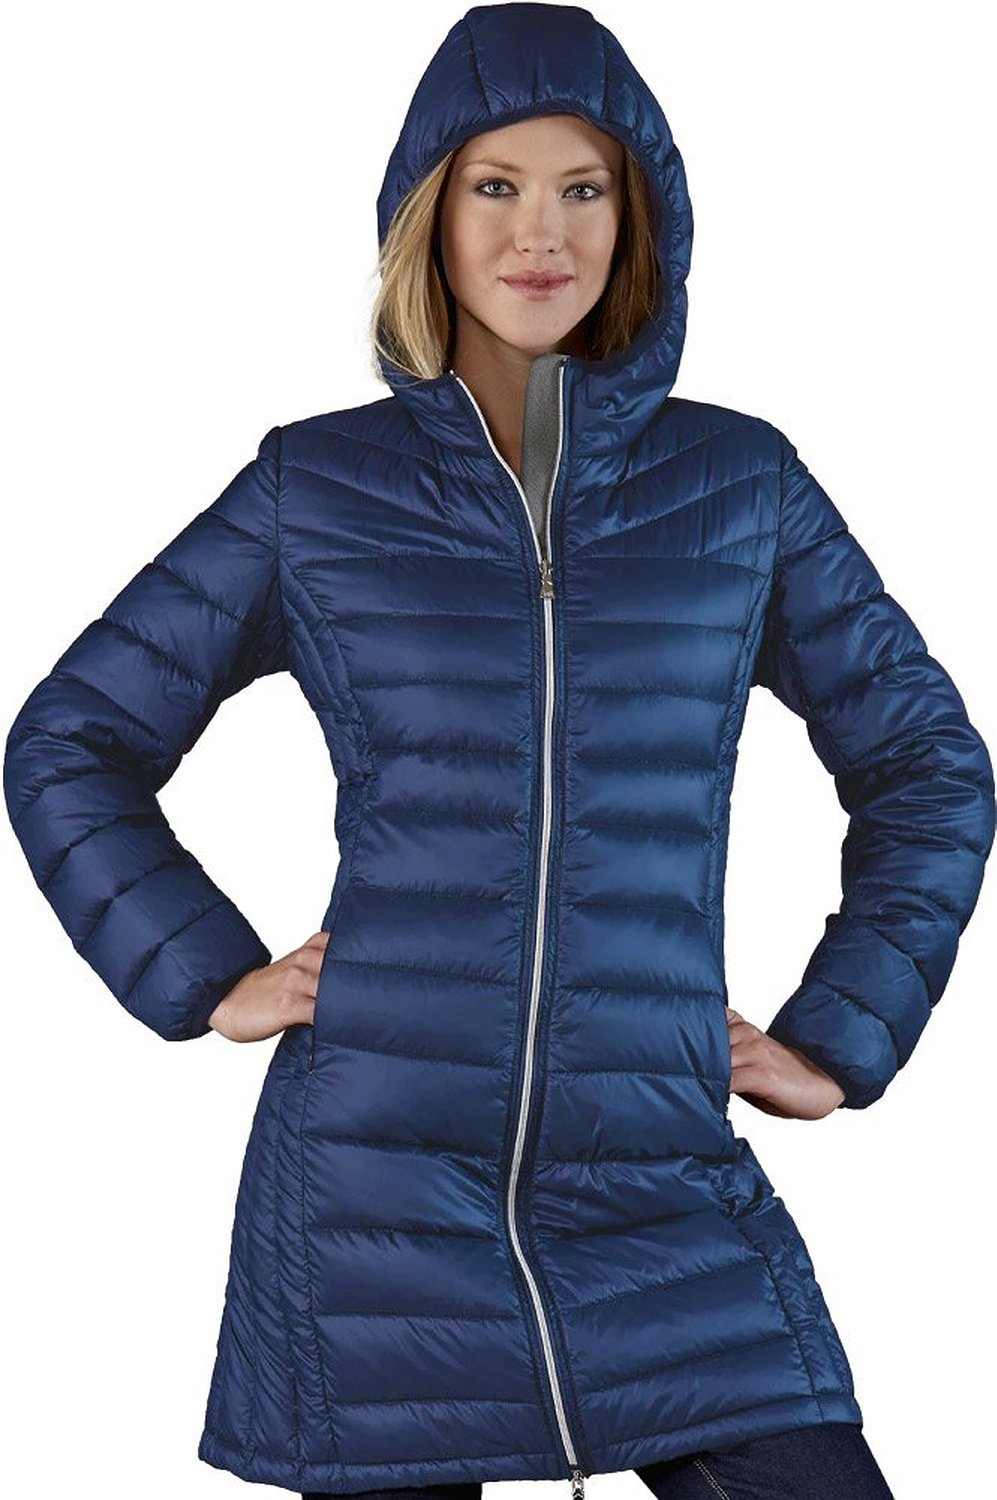 Long Down Jacket Ladies - Coat Nj